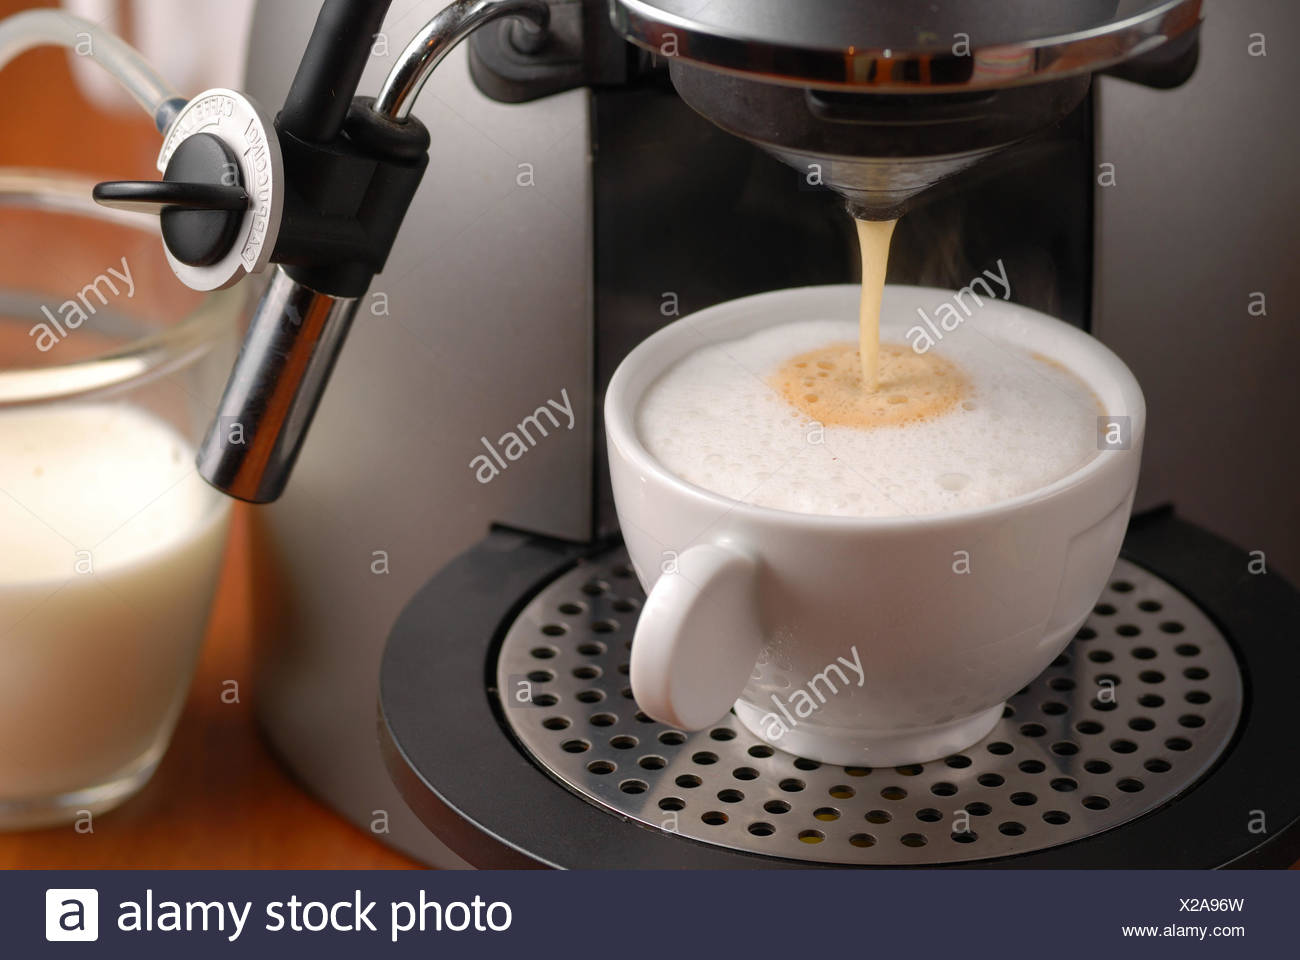 Image result for cappuccino making